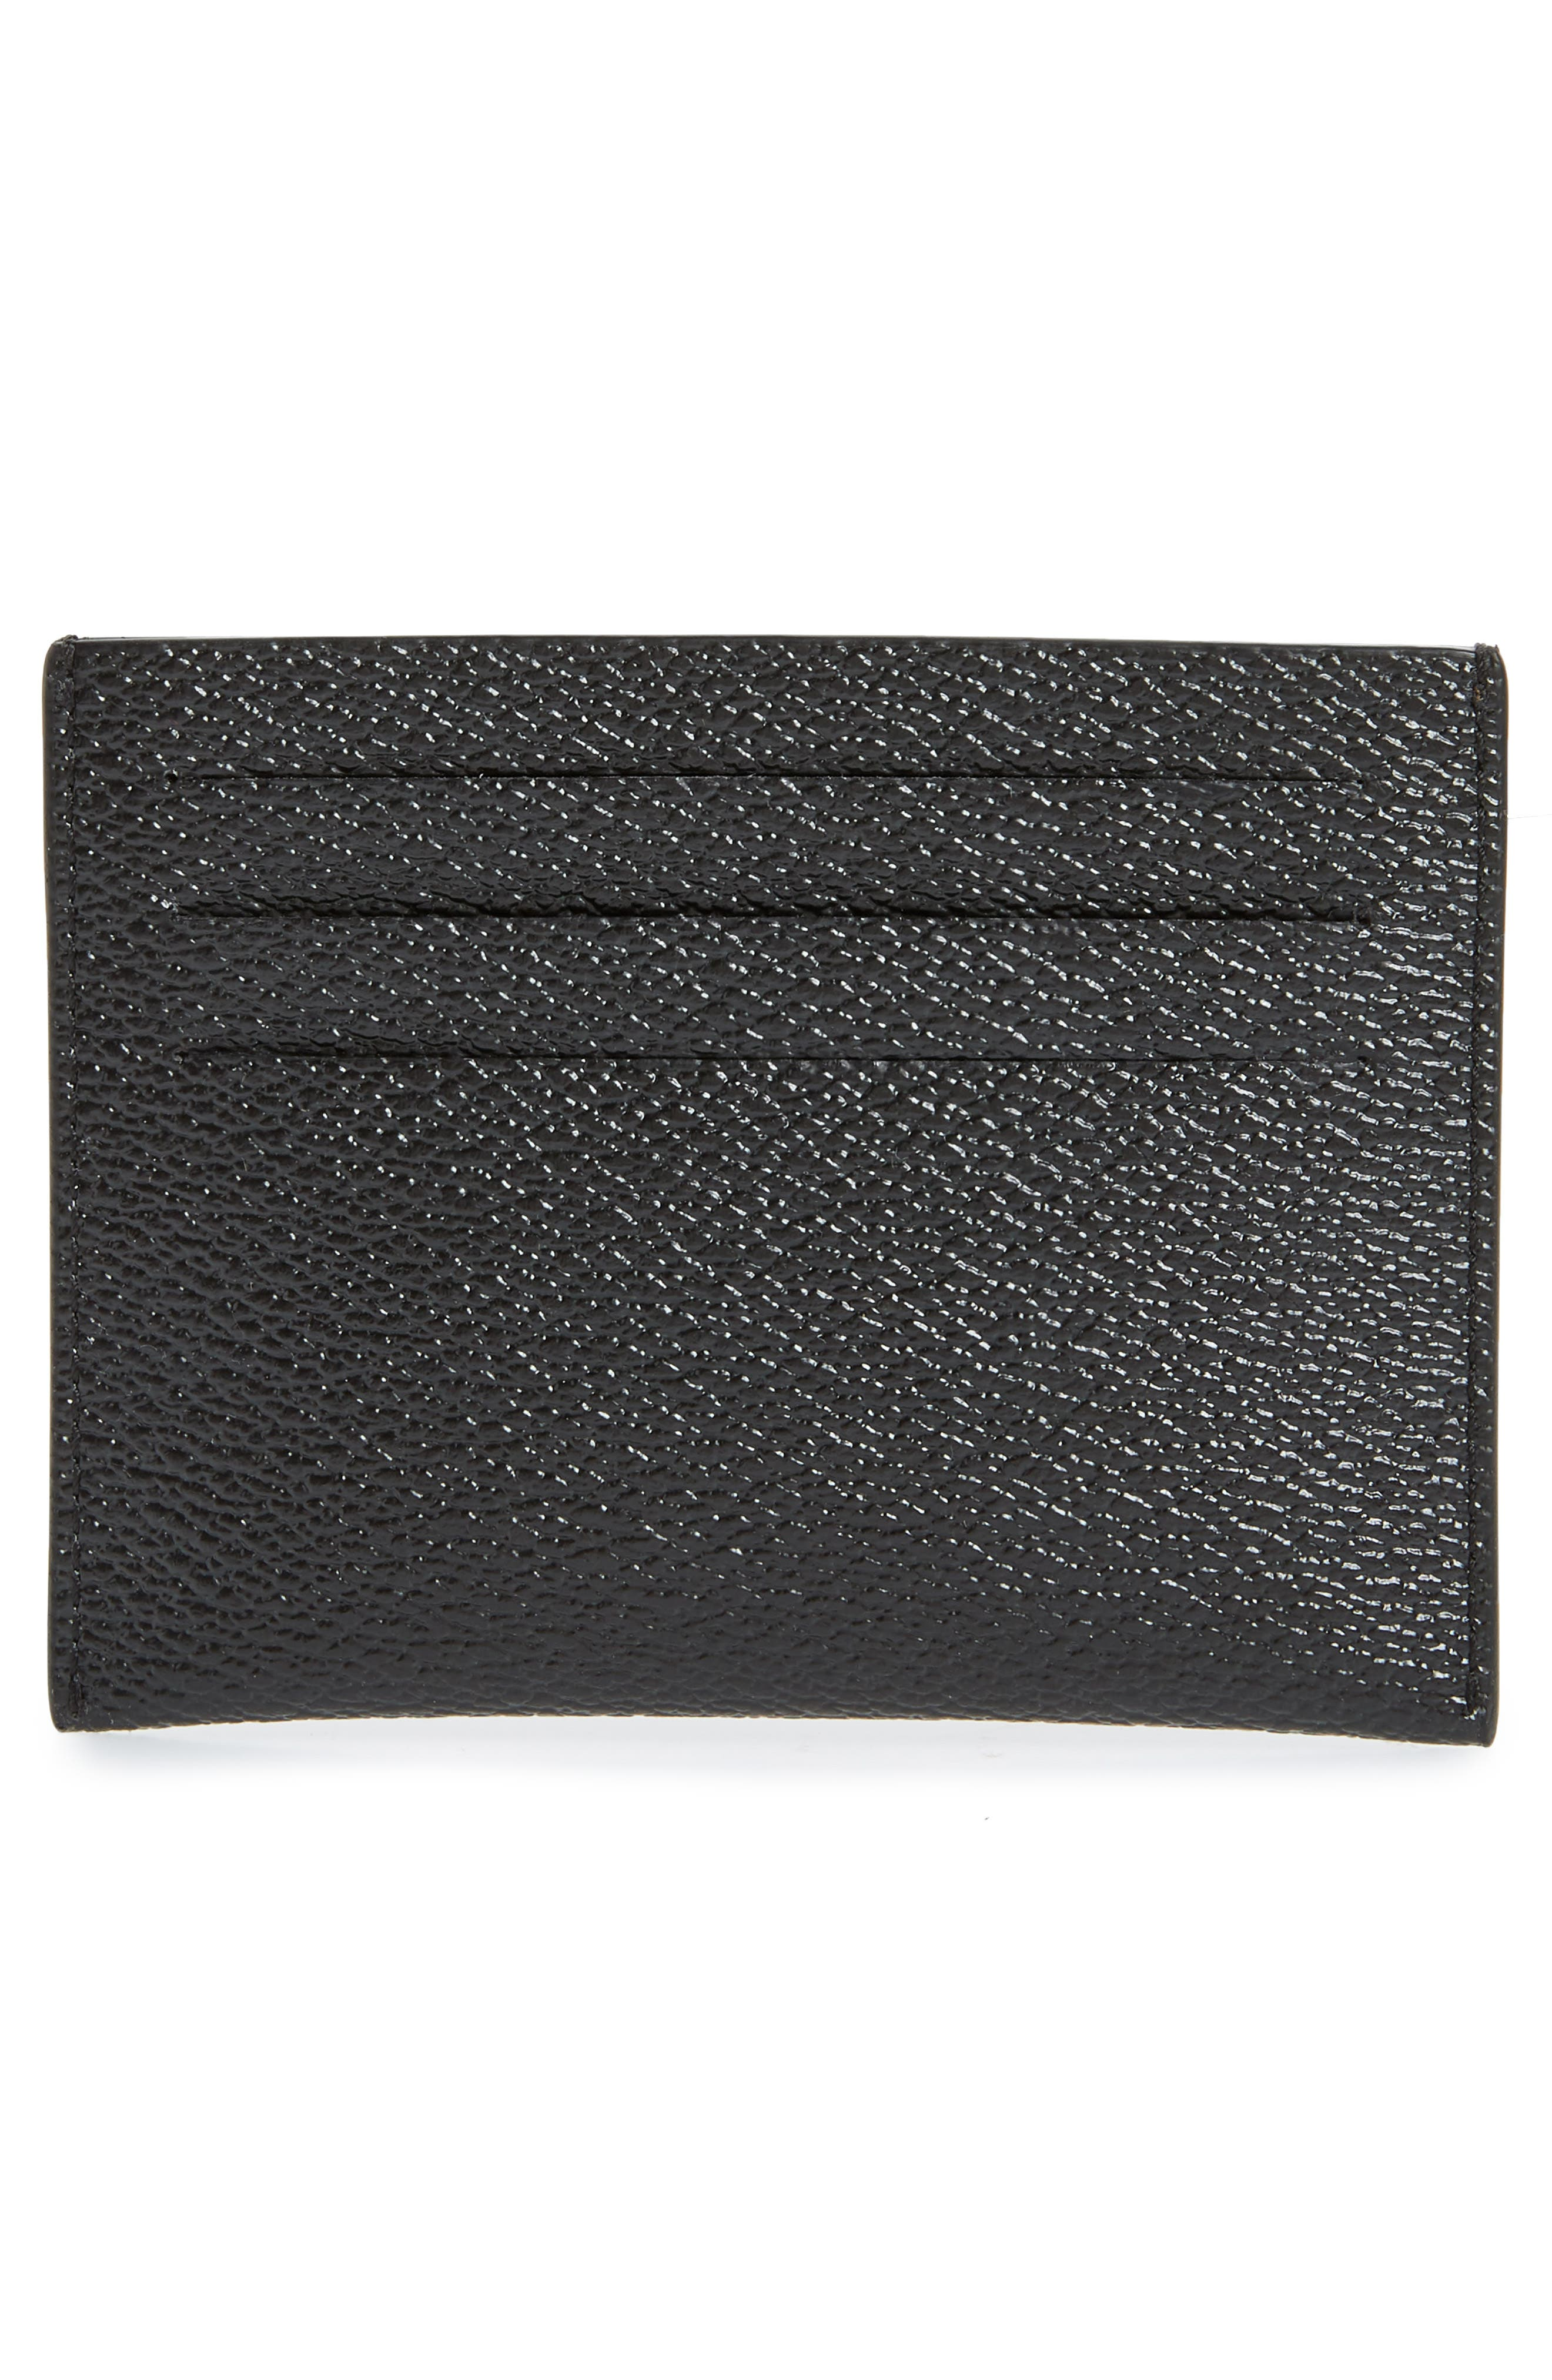 Lion Print Card Case,                             Alternate thumbnail 2, color,                             BLACK MULTI